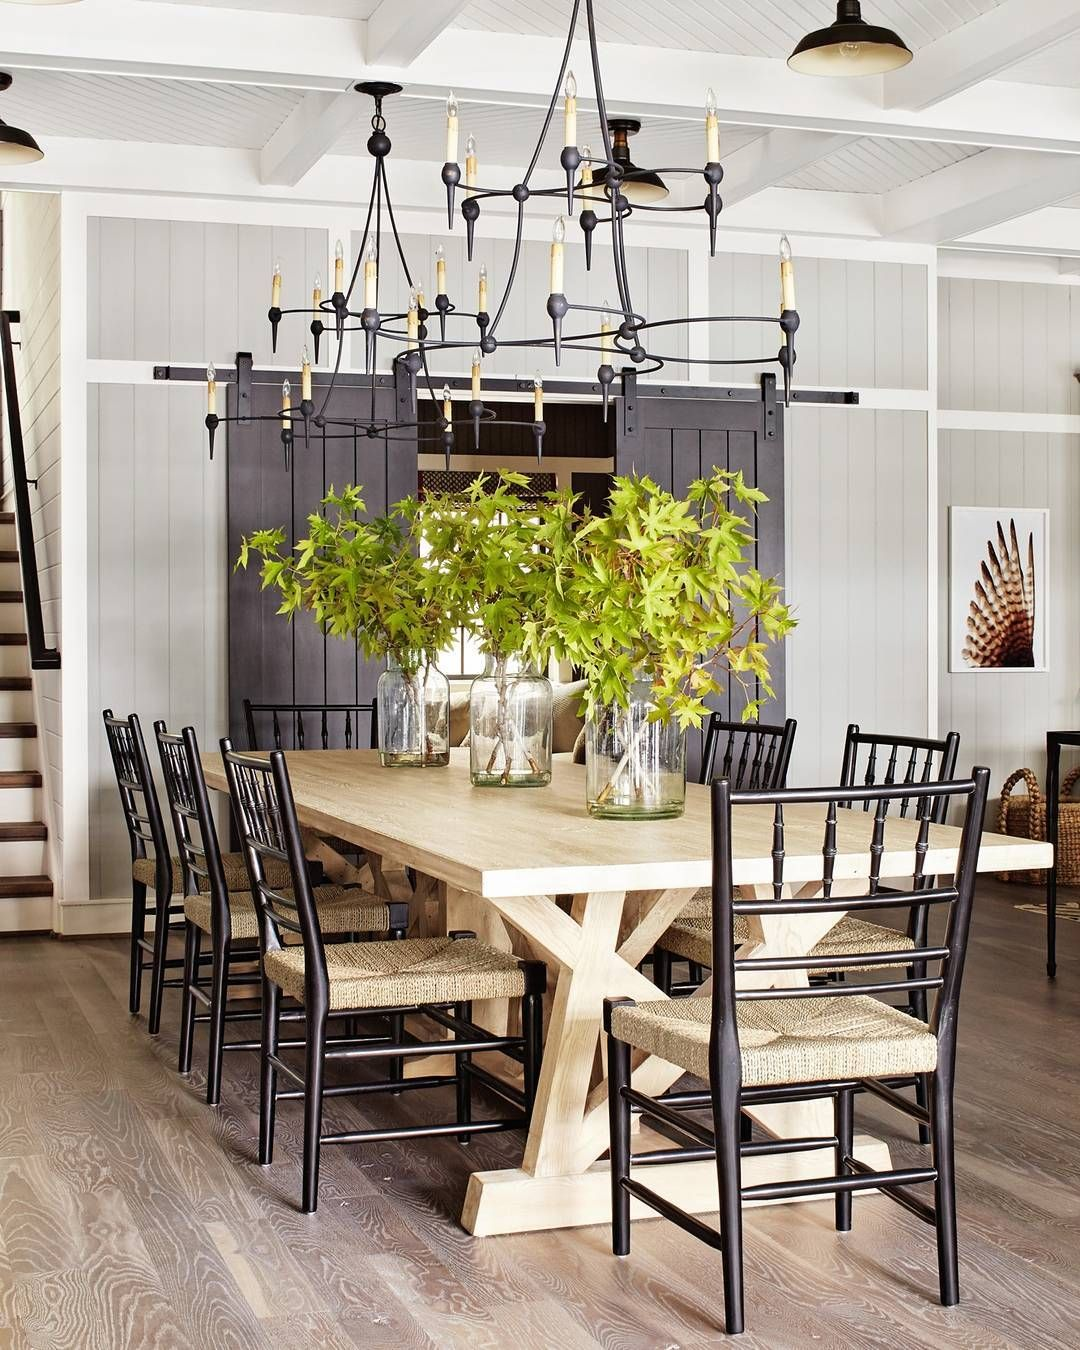 An Inviting Modern Farmhouse Inspired Dining Room.